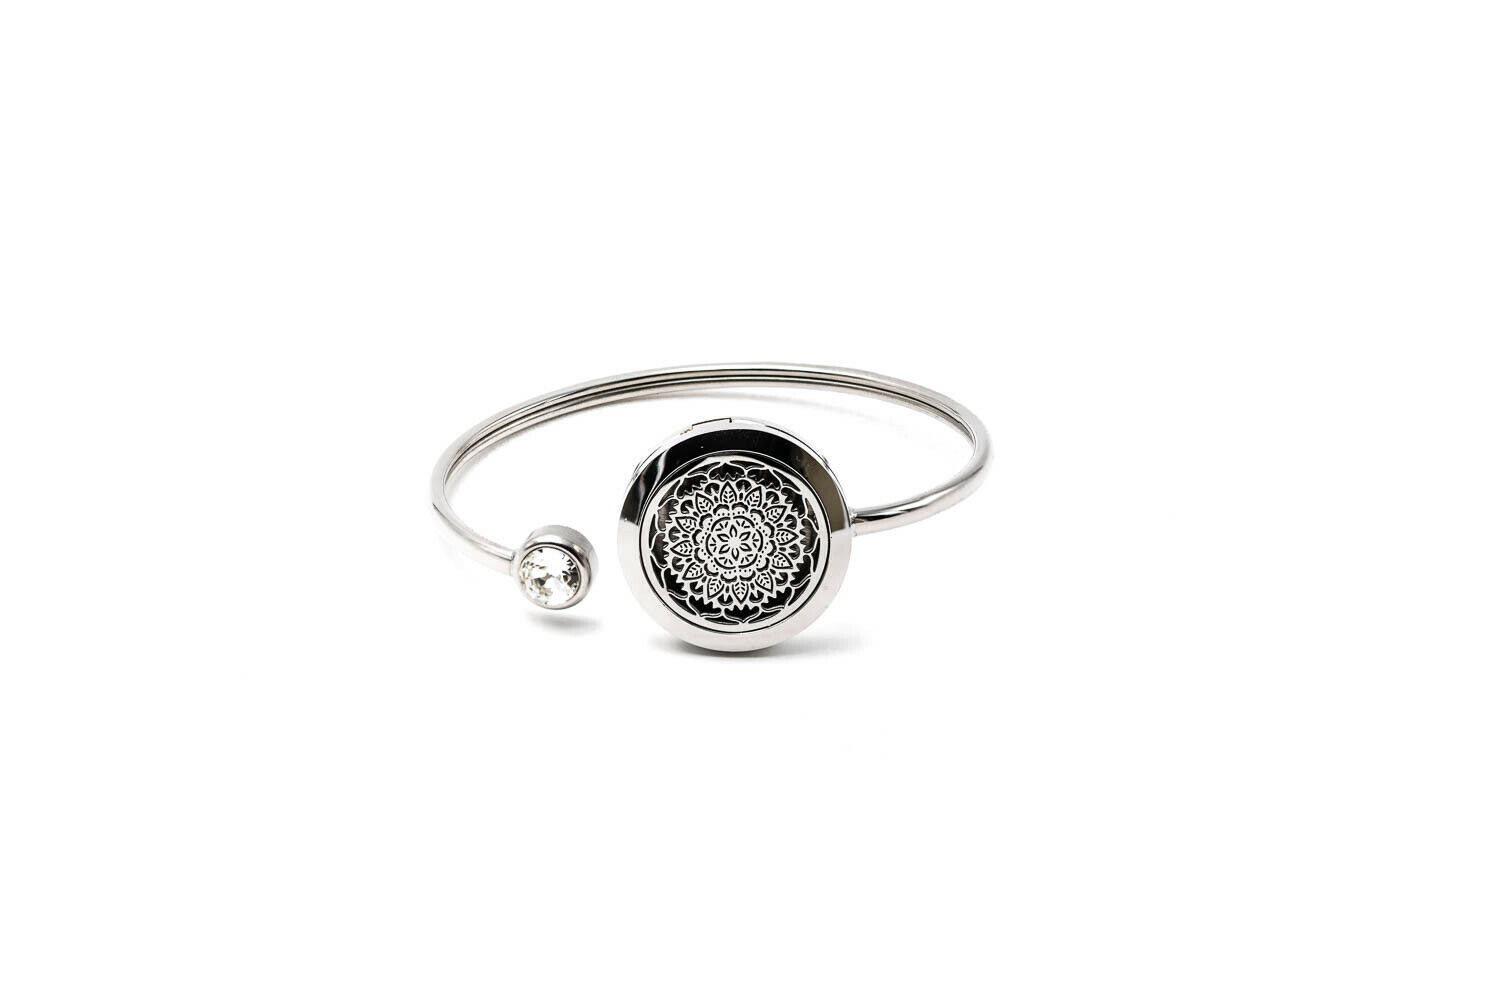 Primary image for Origin Stainless Steel Aromatherapy Bracelet with Mandala Design